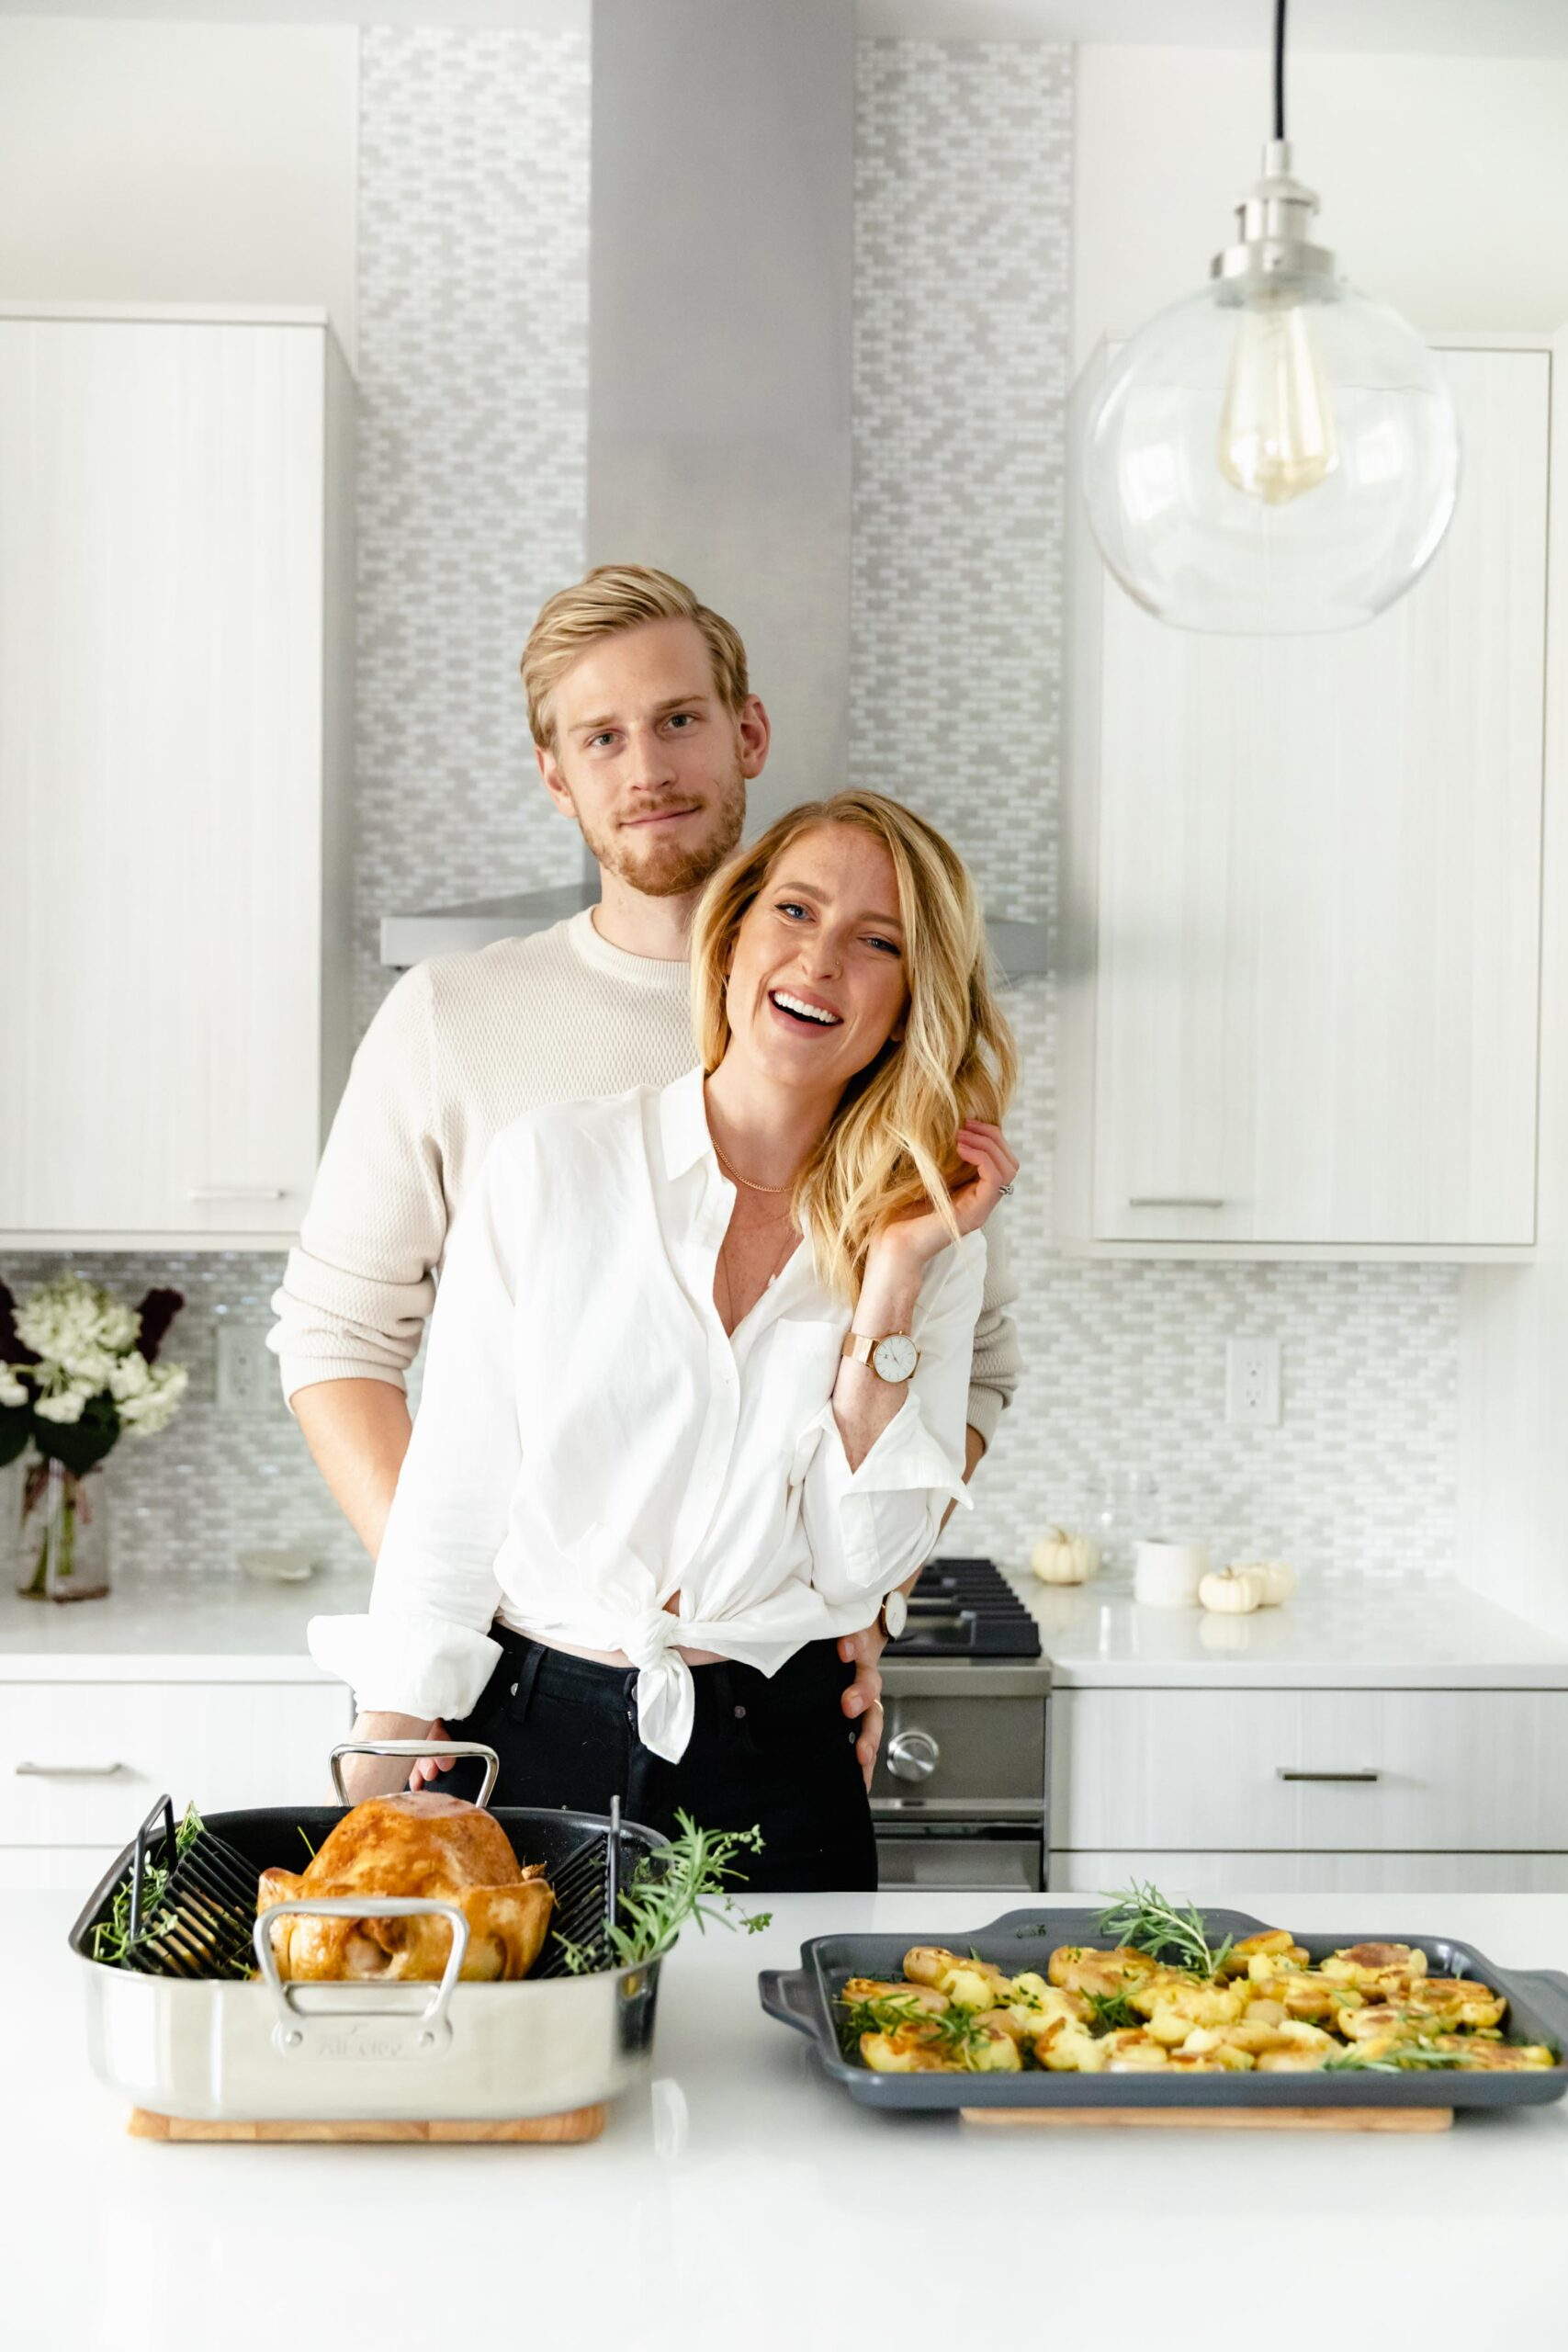 newlywed couple entertaining in kitchen